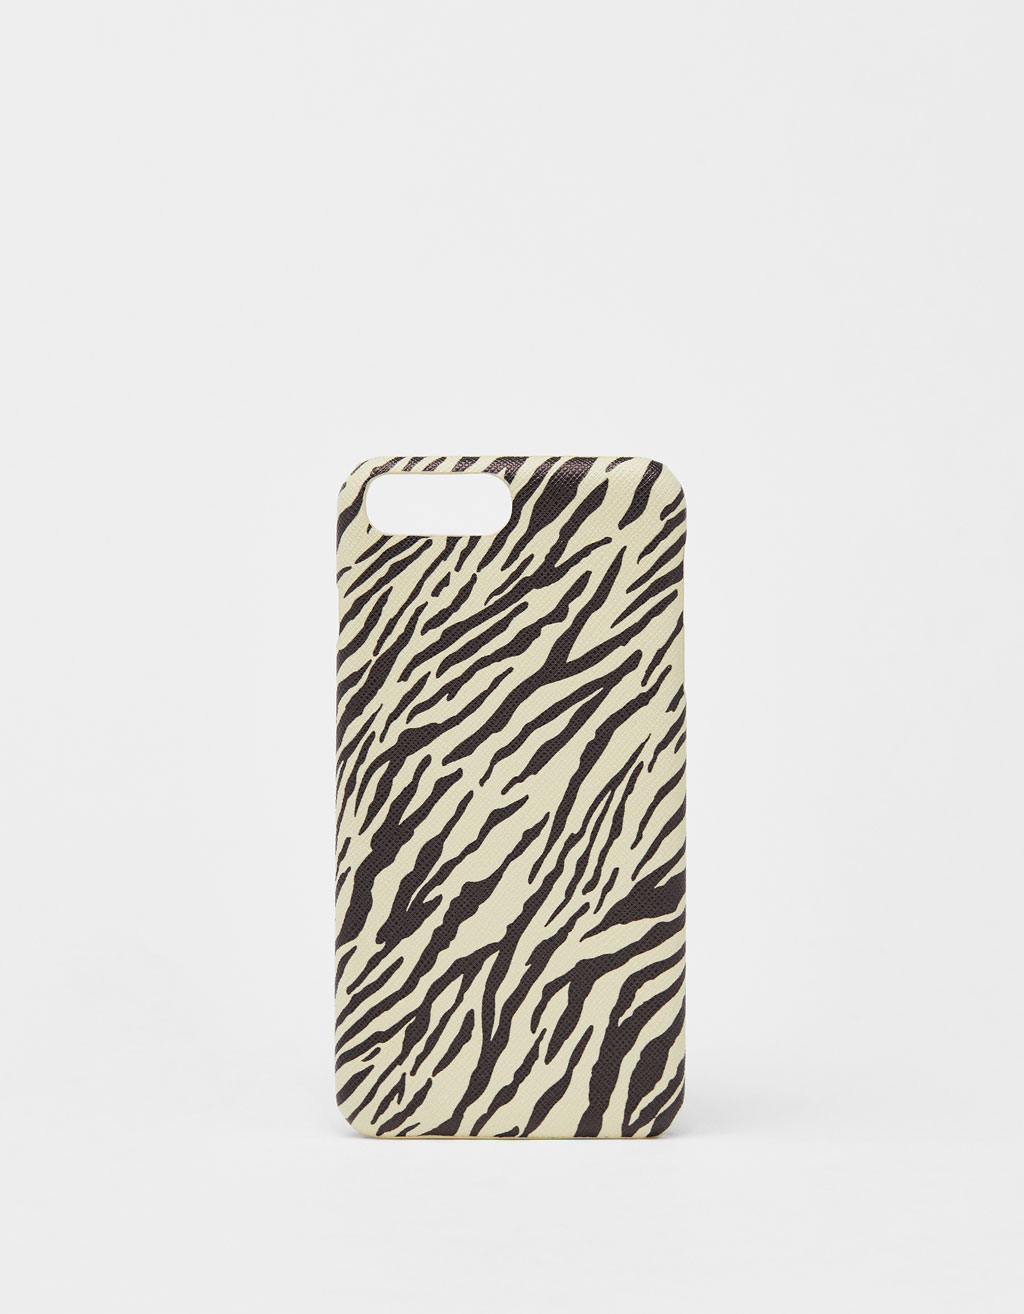 Zebra case for iPhone 6 Plus/7 Plus/8 Plus